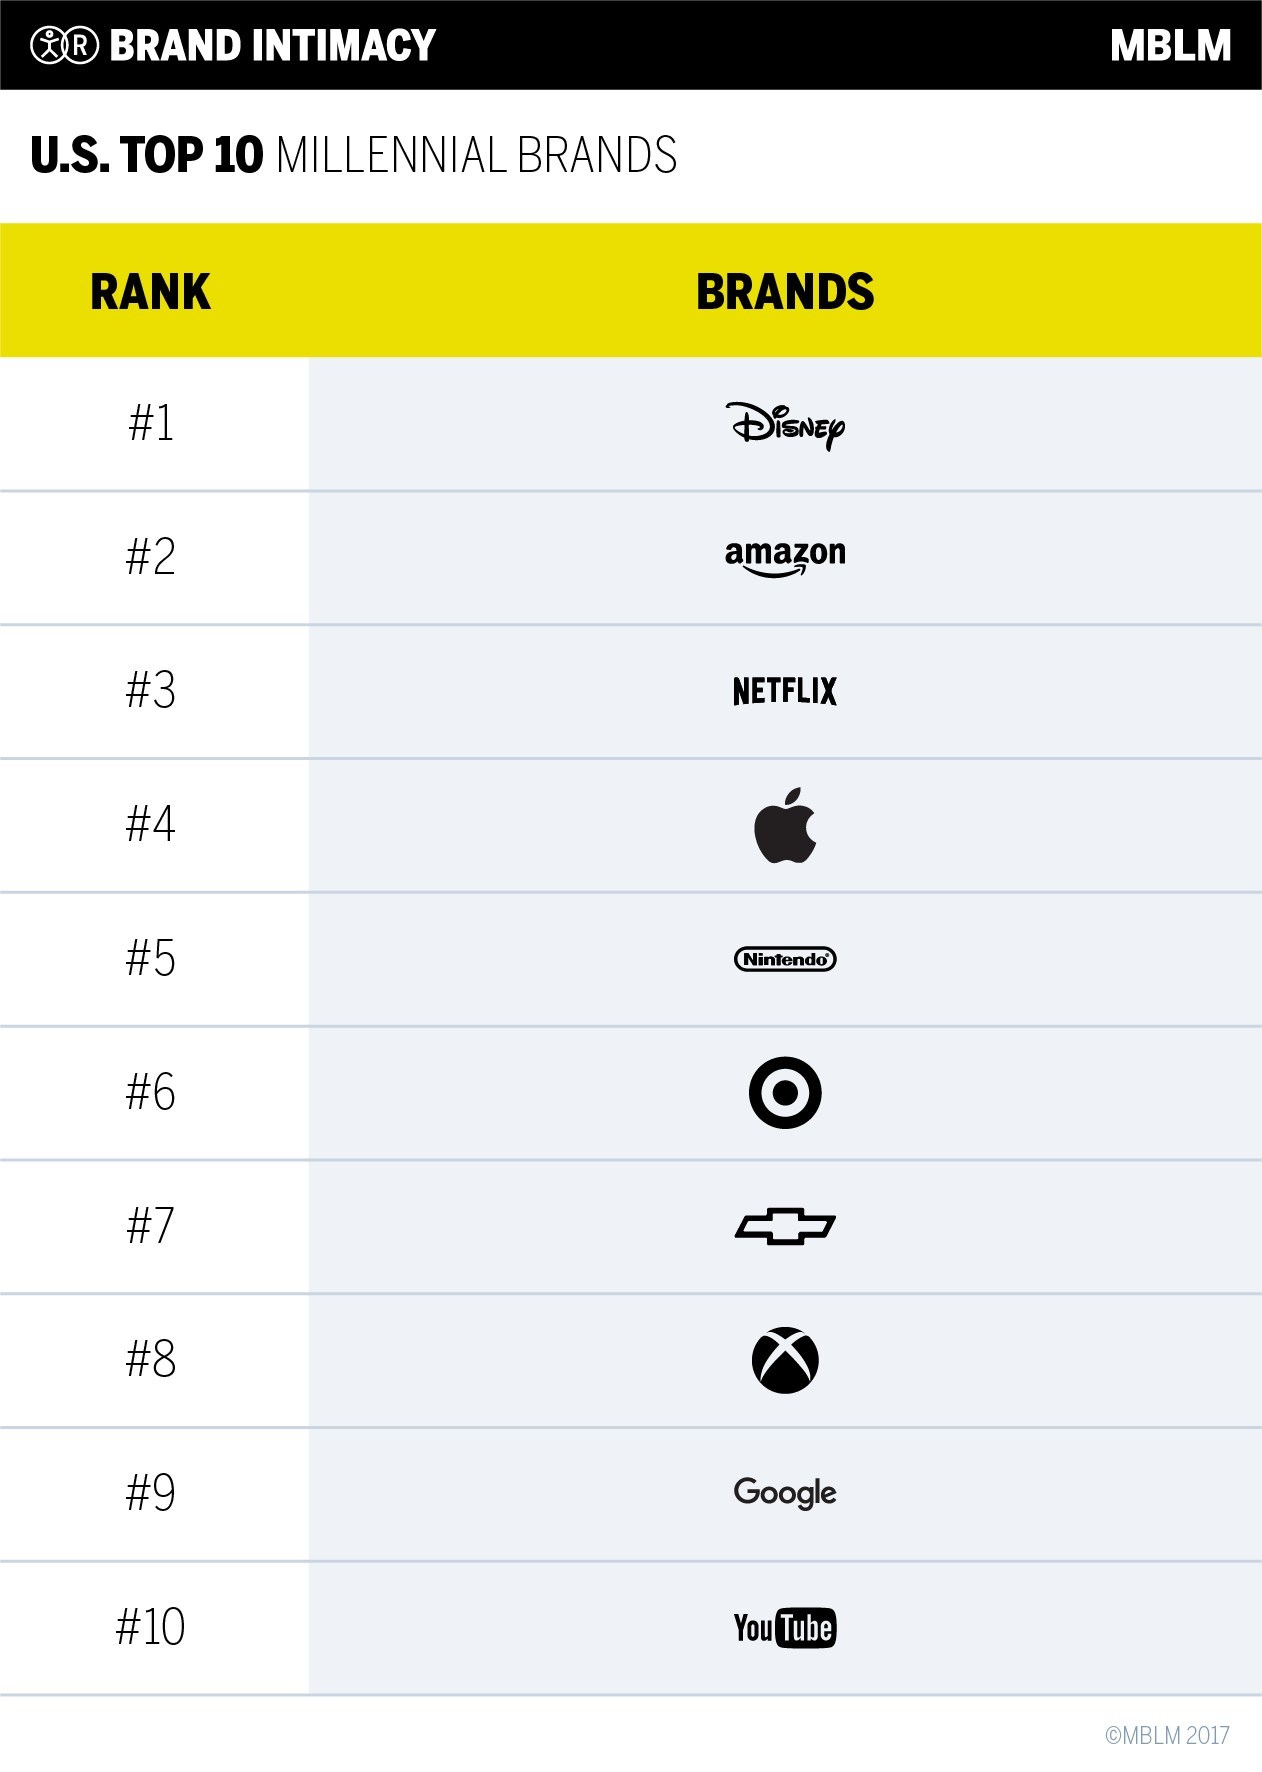 U.S. Top 10 Millennial Brands